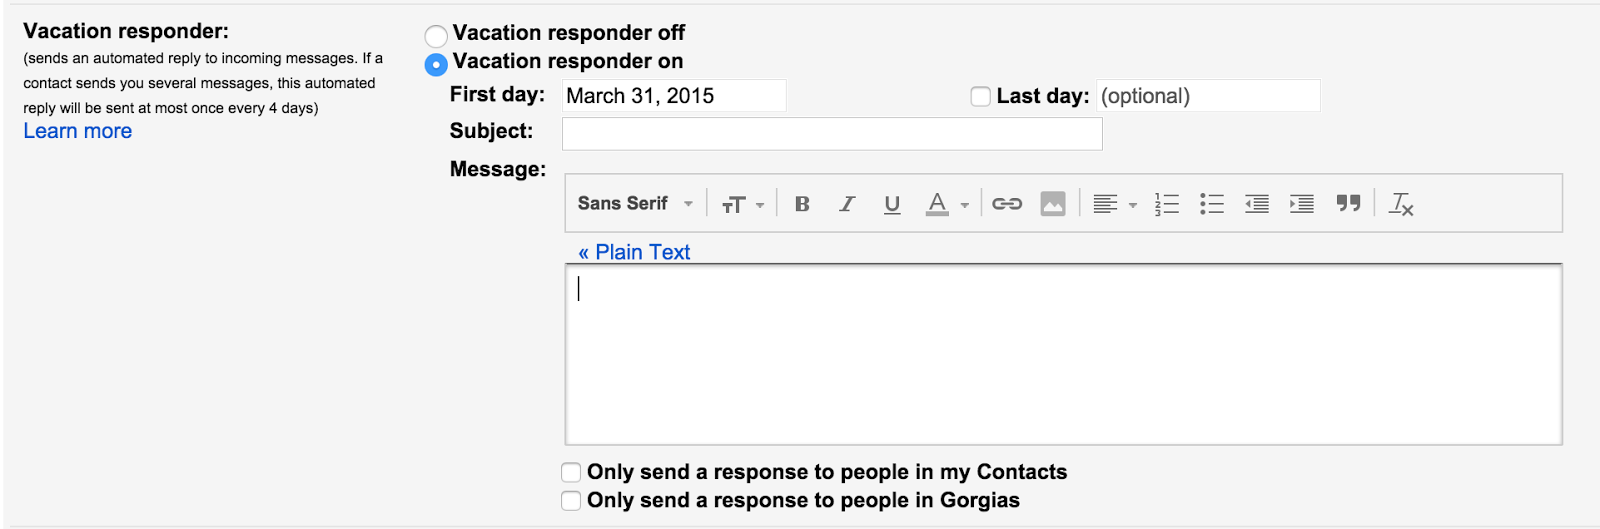 Use the vacation responder to setup an automatic response